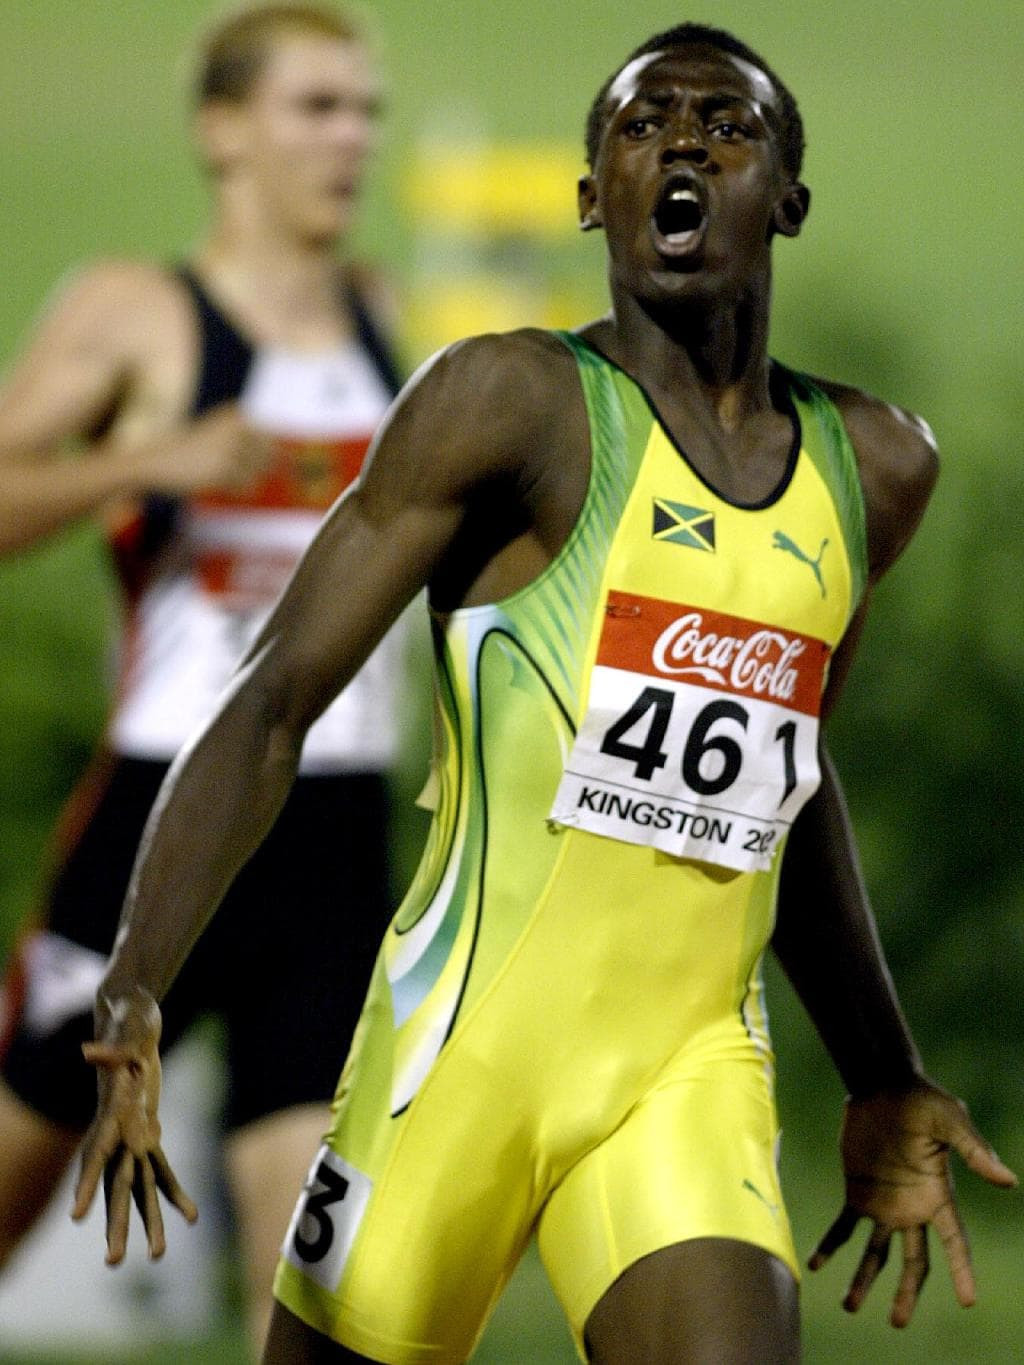 The international career of Usain Bolt was launched when he won the 200 metres at the 2002 IAAF World Junior Championships in front of a home crowd in Kingston ©Getty Images